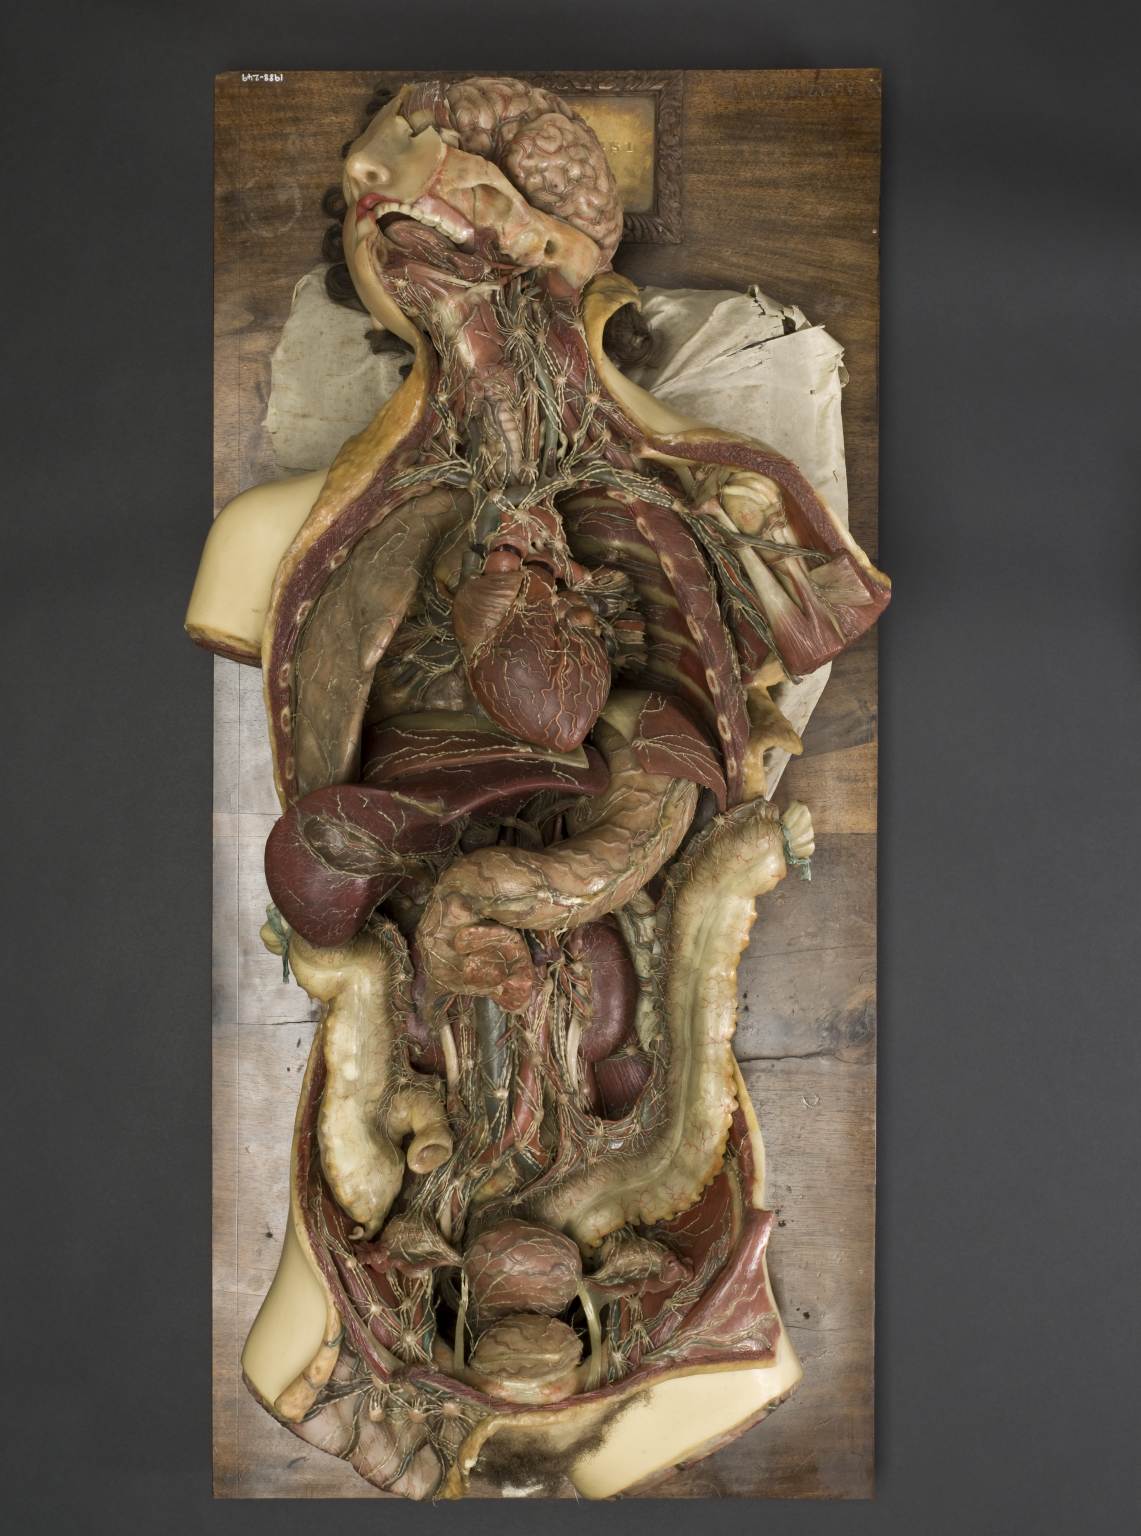 Wax anatomical model of a female showing internal organs, Florence ...